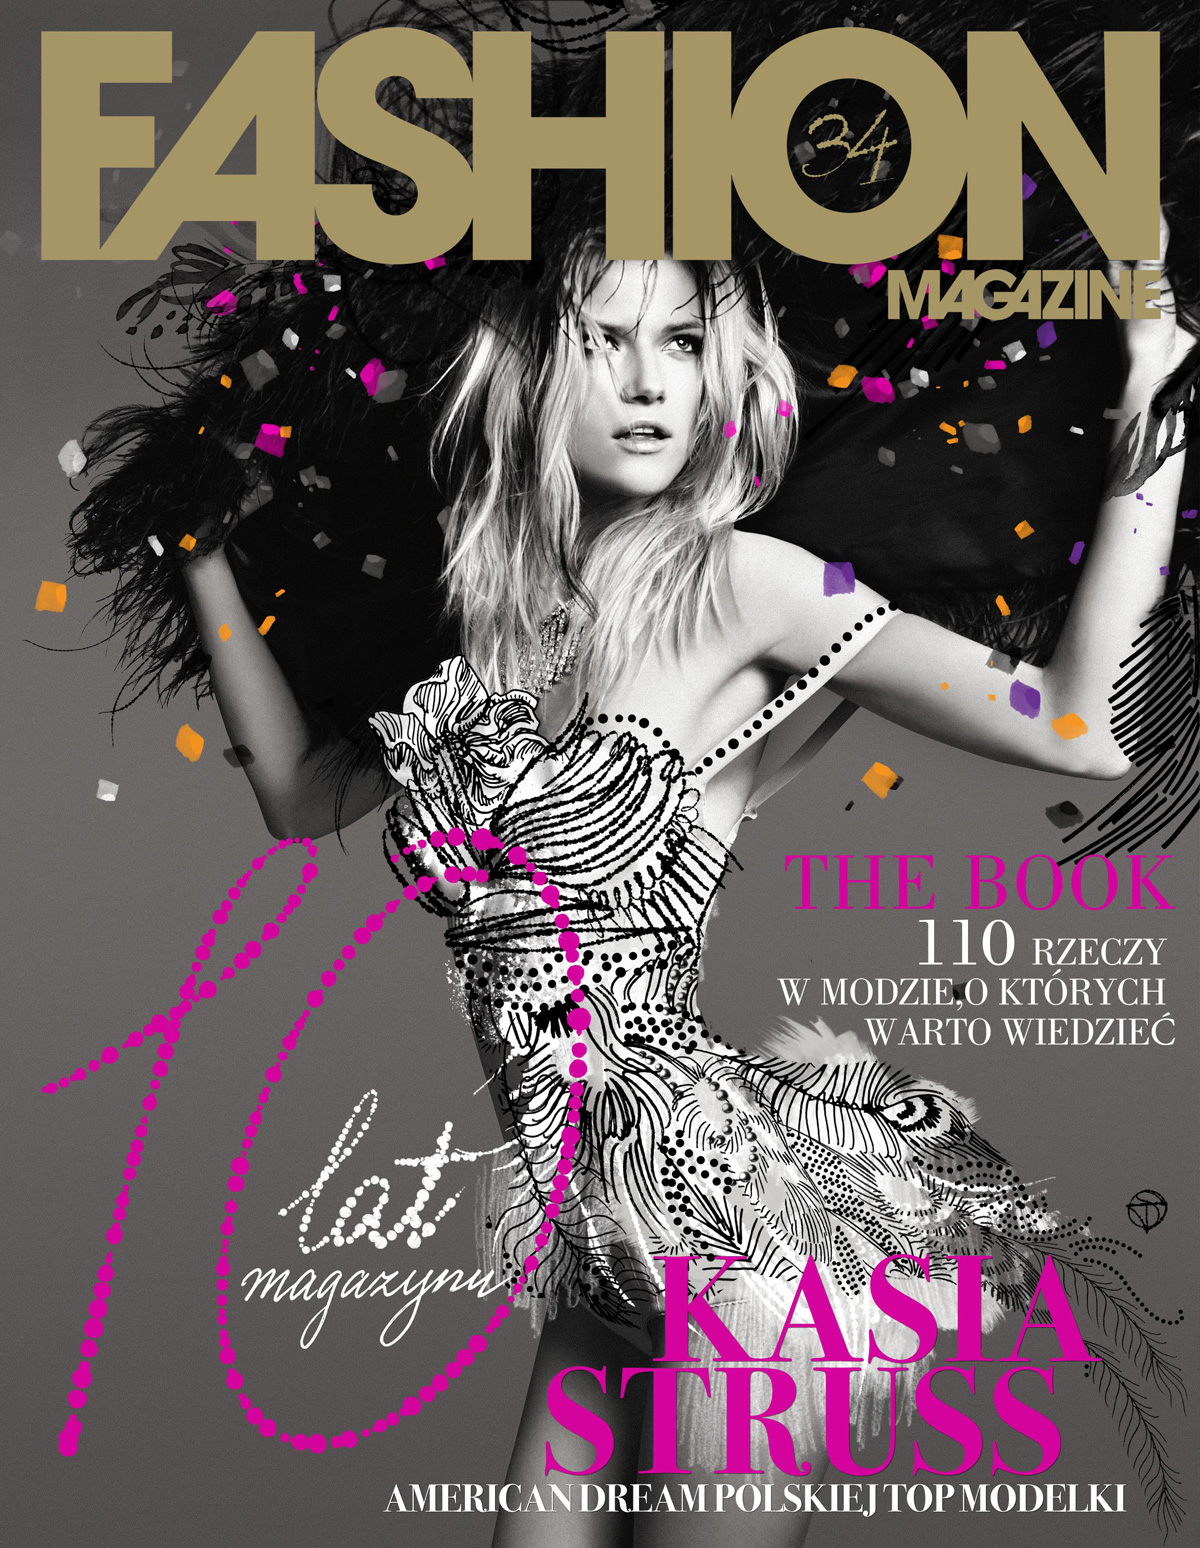 Fashion Magazines Look To Familiar Faces For Cover Models: Exclusive: Kassia Struss For Fashion Magazine's 10th